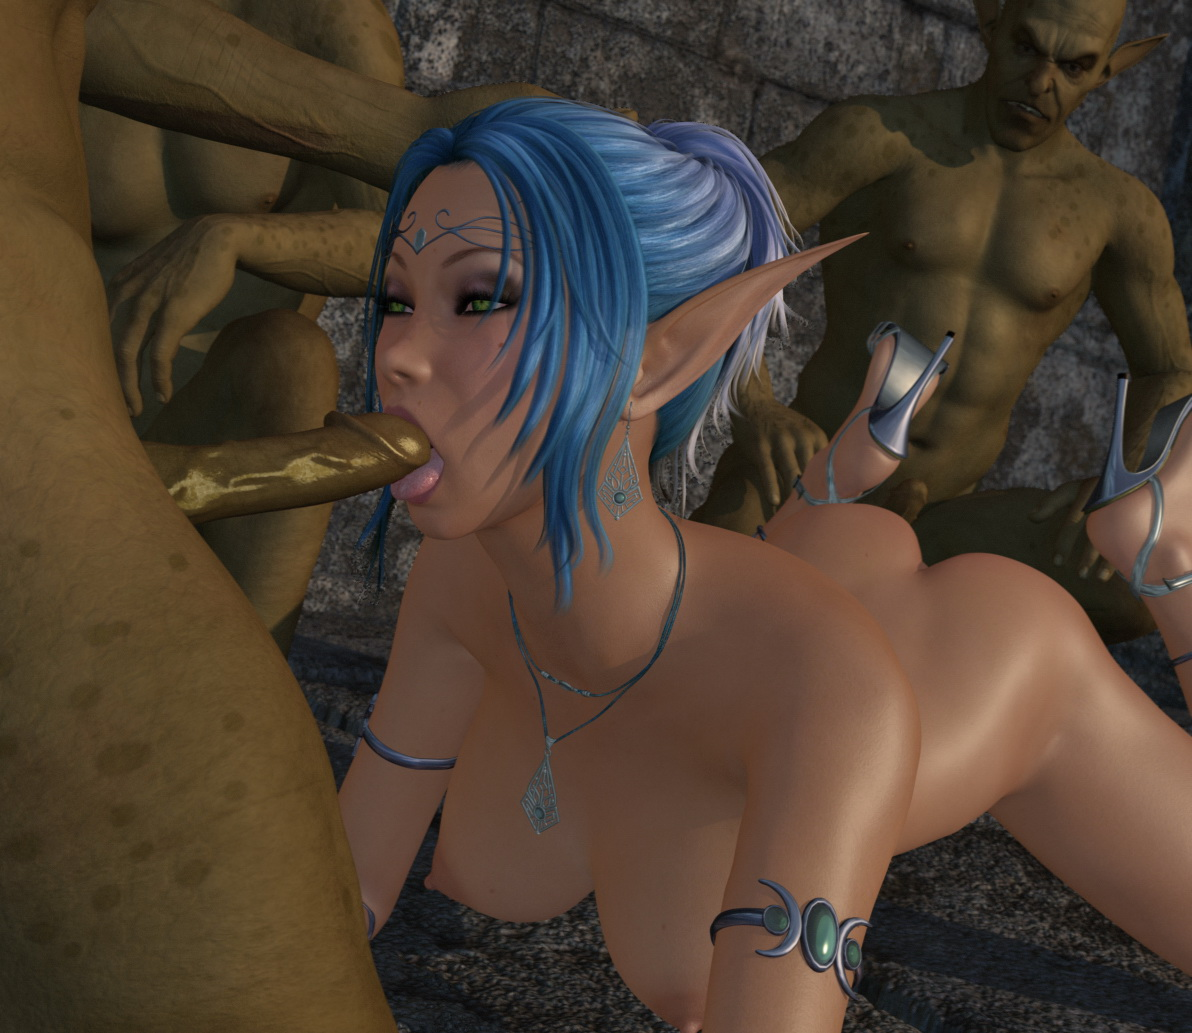 Elf sucks monster sex pic